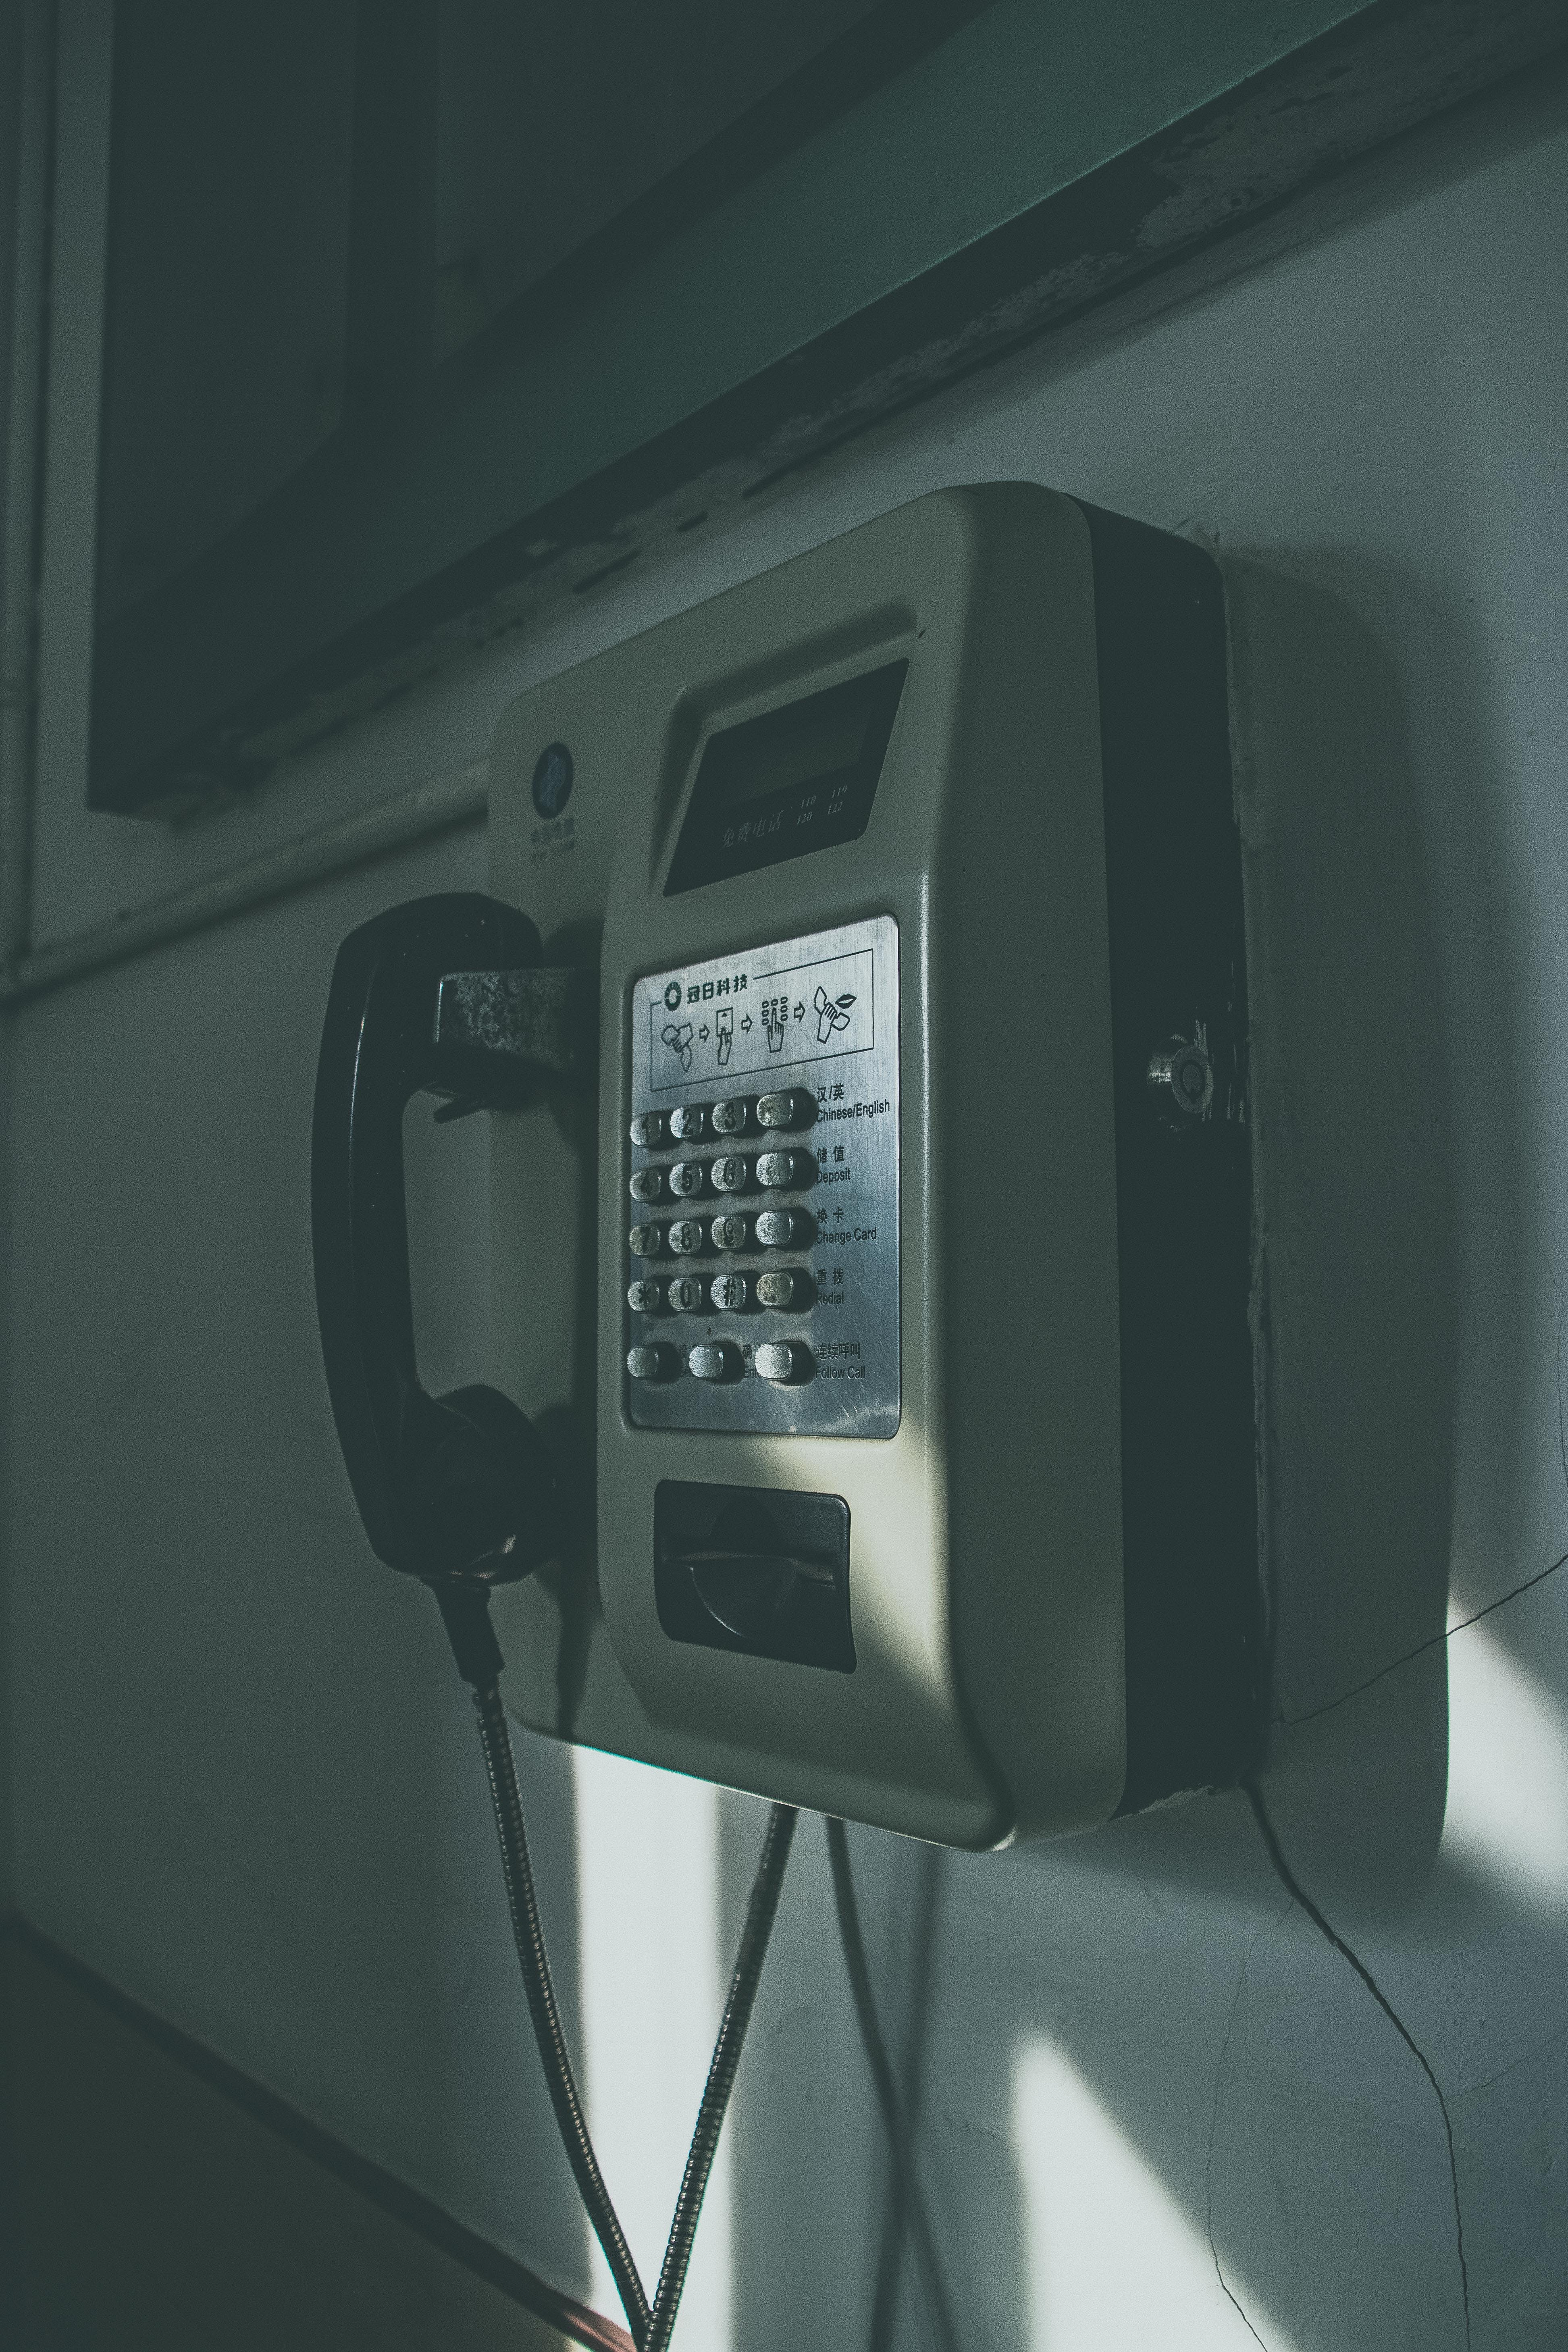 Gray and Black Public Phone